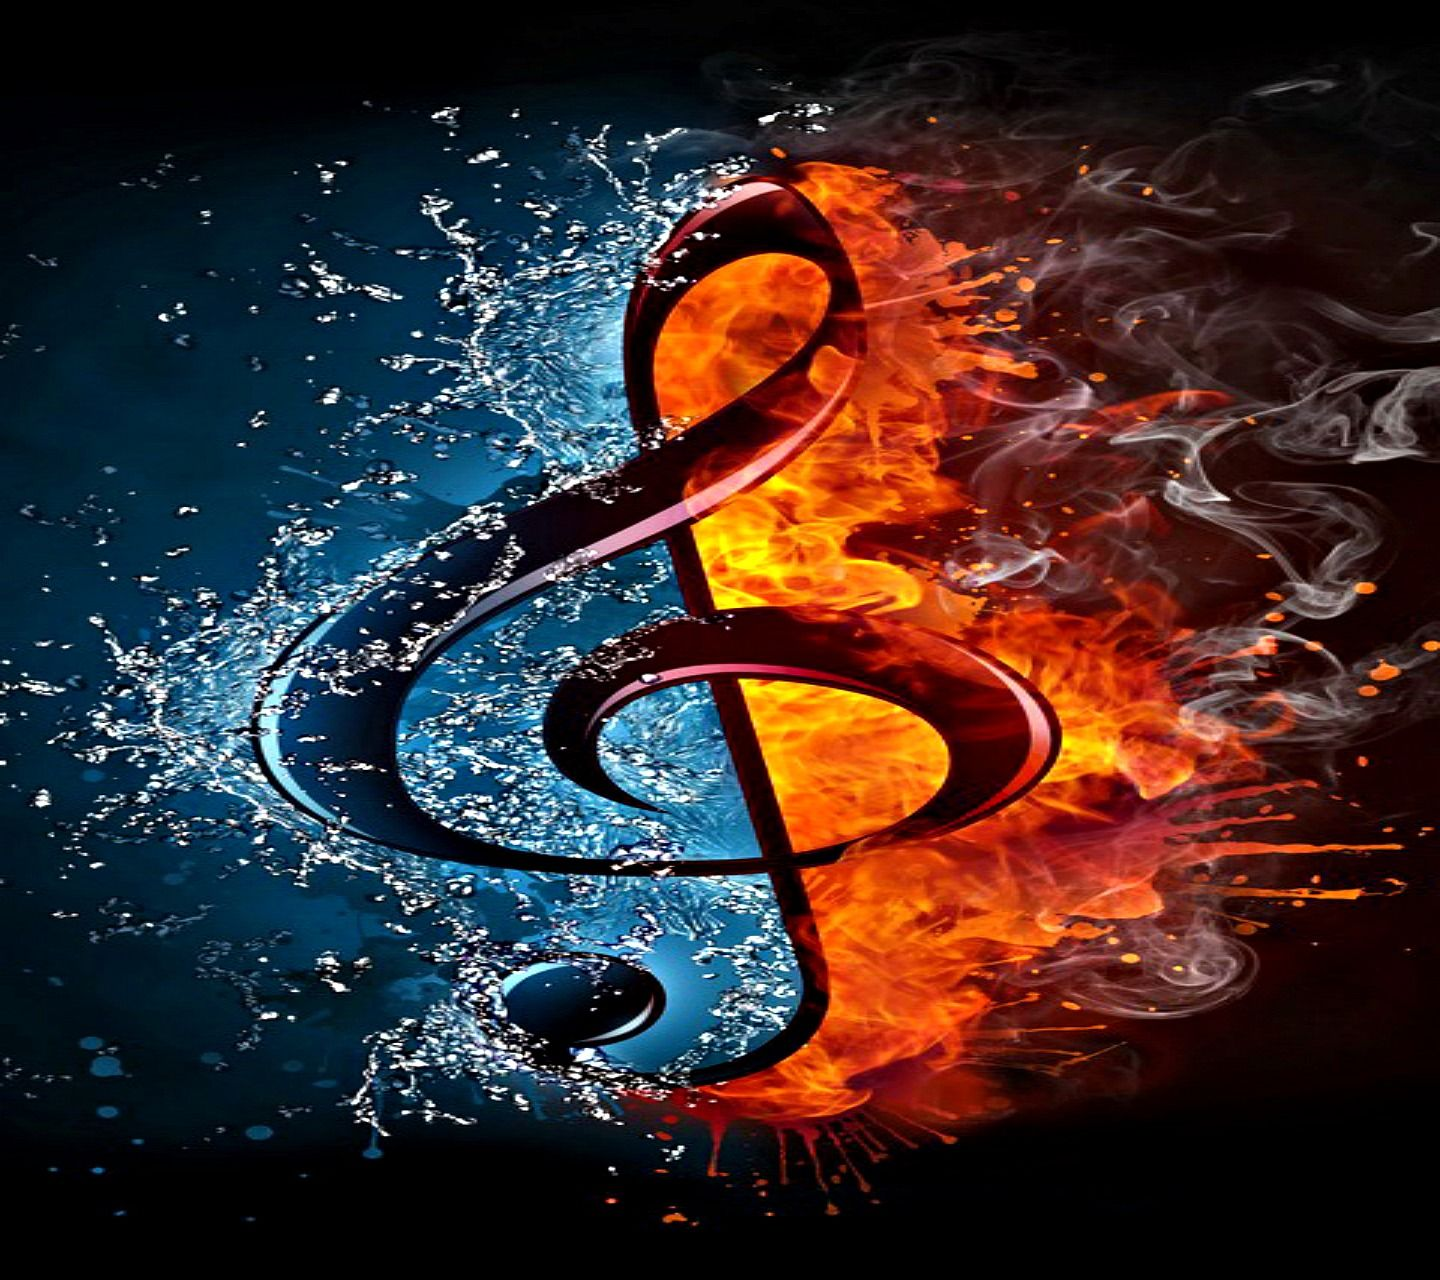 Water/Fire Clef (Raw Emotion & Passion)